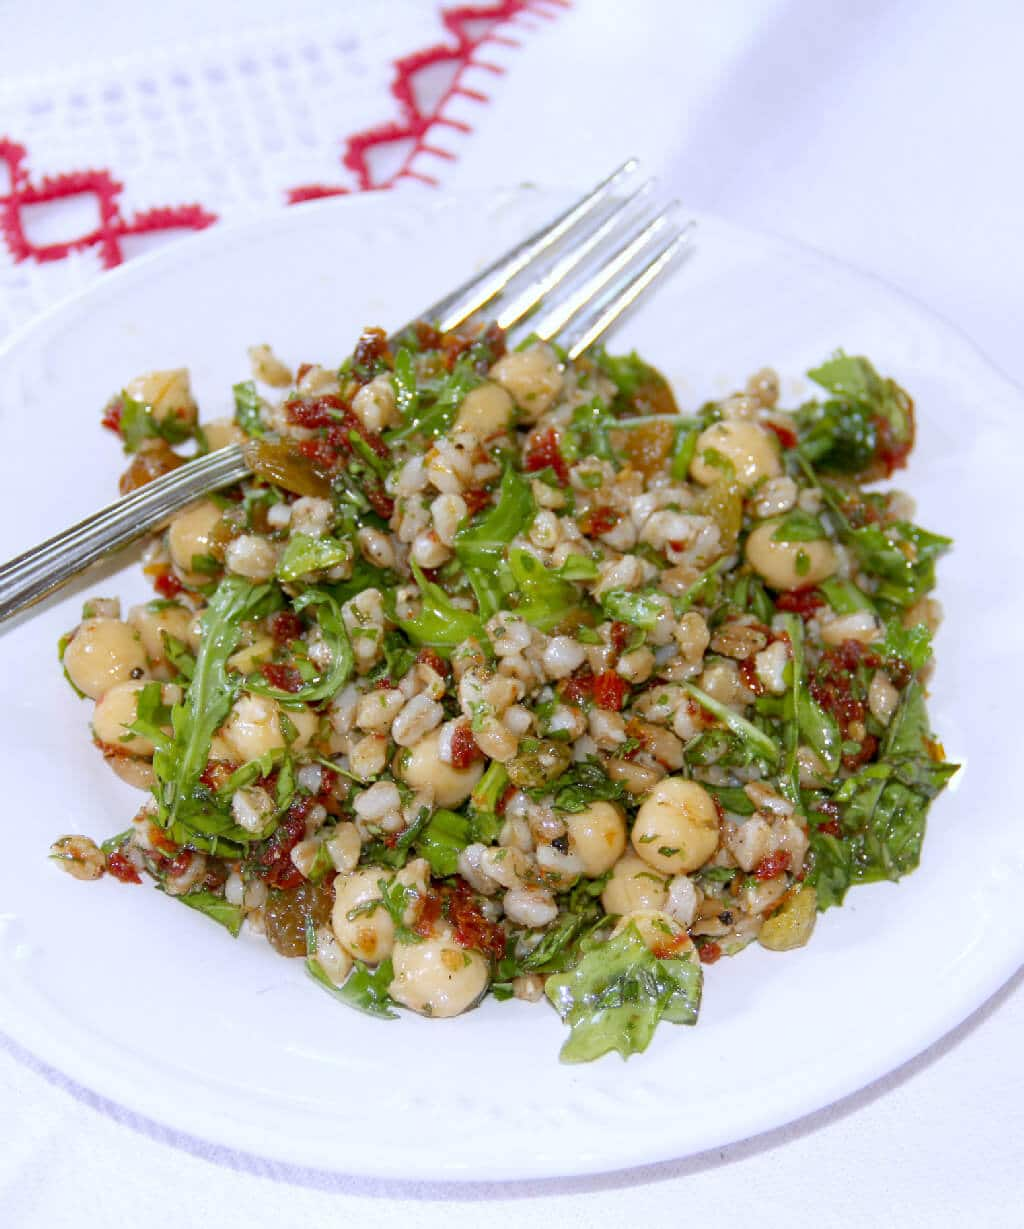 Farro Salad—a mix of farro, chickpeas, sun-dried tomatoes, arugula, and golden raisins, it hits all the right notes. Savory with just a touch of sweetness.